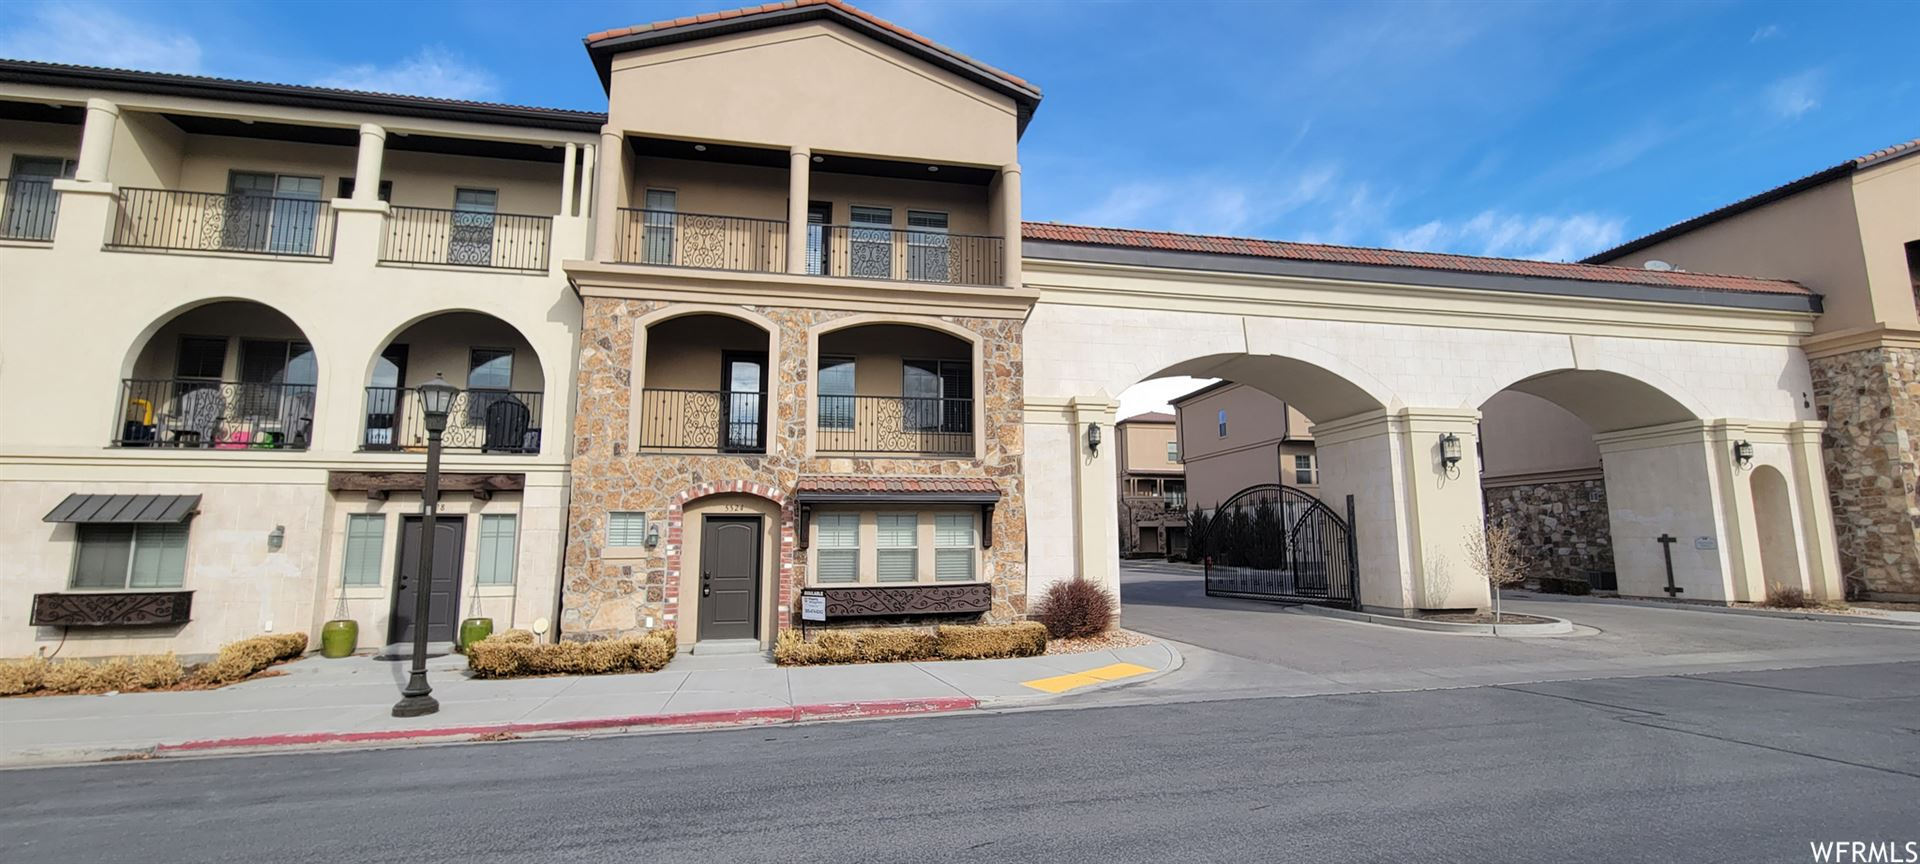 Photo of 5524 PARKWAY W DR, Highland, UT 84003 (MLS # 1727557)